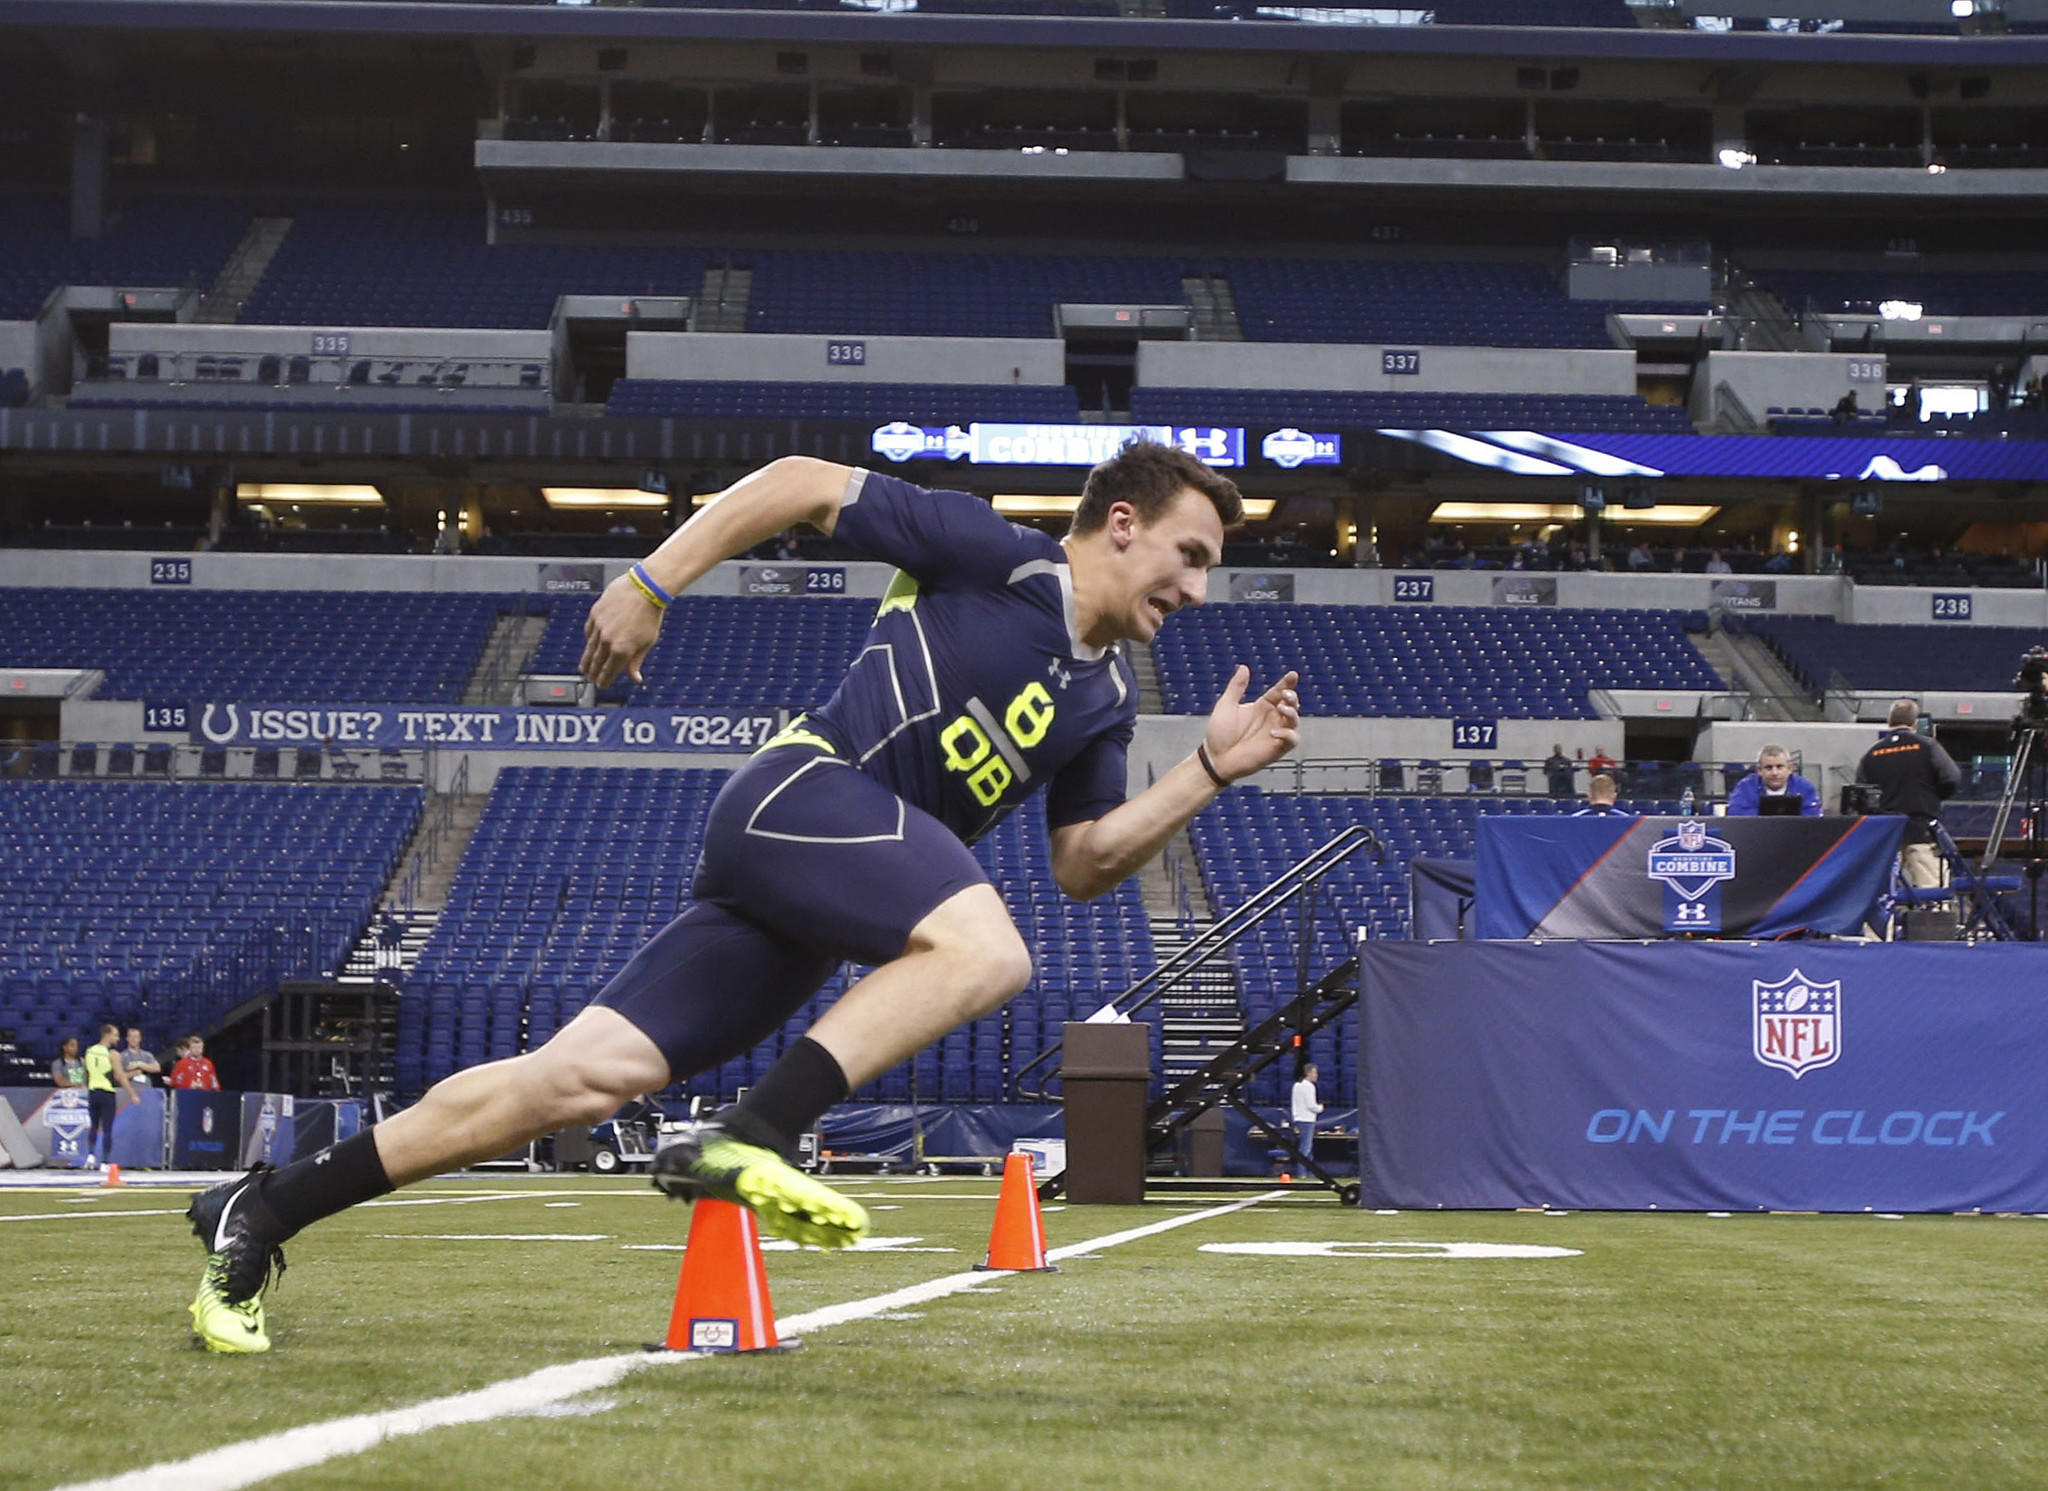 Quarterback Johnny Manziel runs the shuttle dash during the 2014 NFL combine at Lucas Oil Stadium.